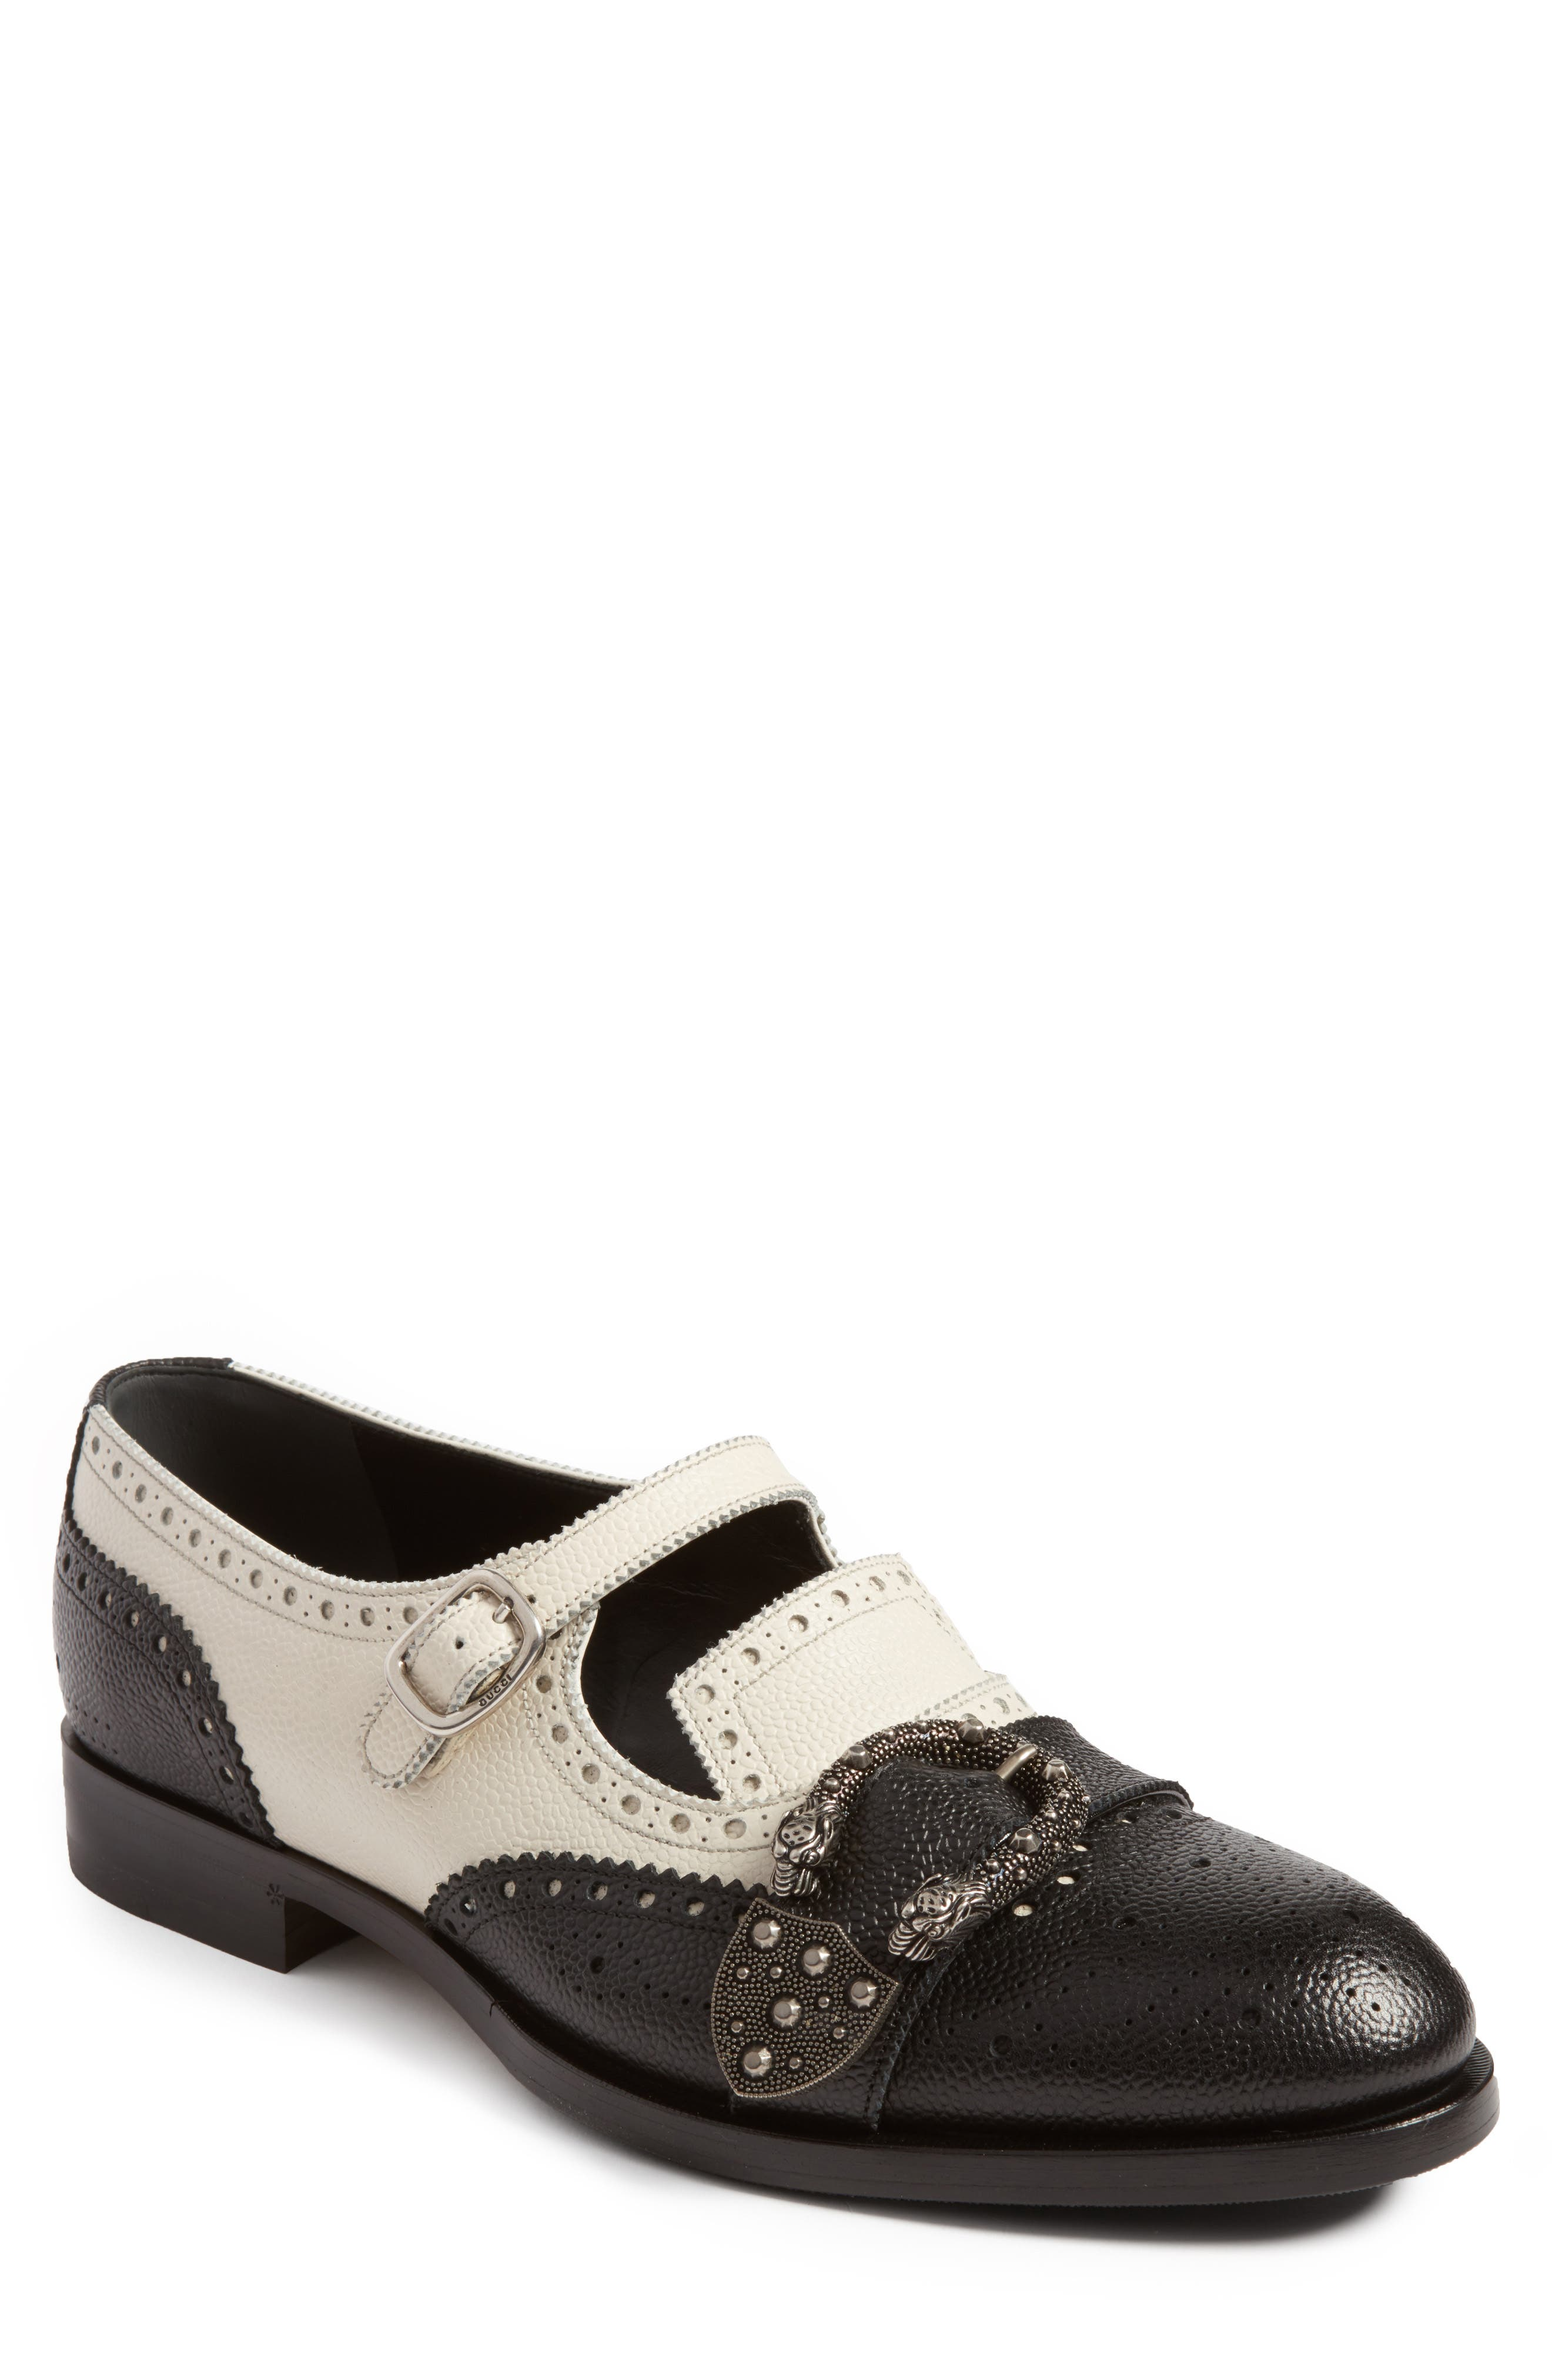 Alternate Image 1 Selected - Gucci Queercore Brogue Monk Shoe (Men)